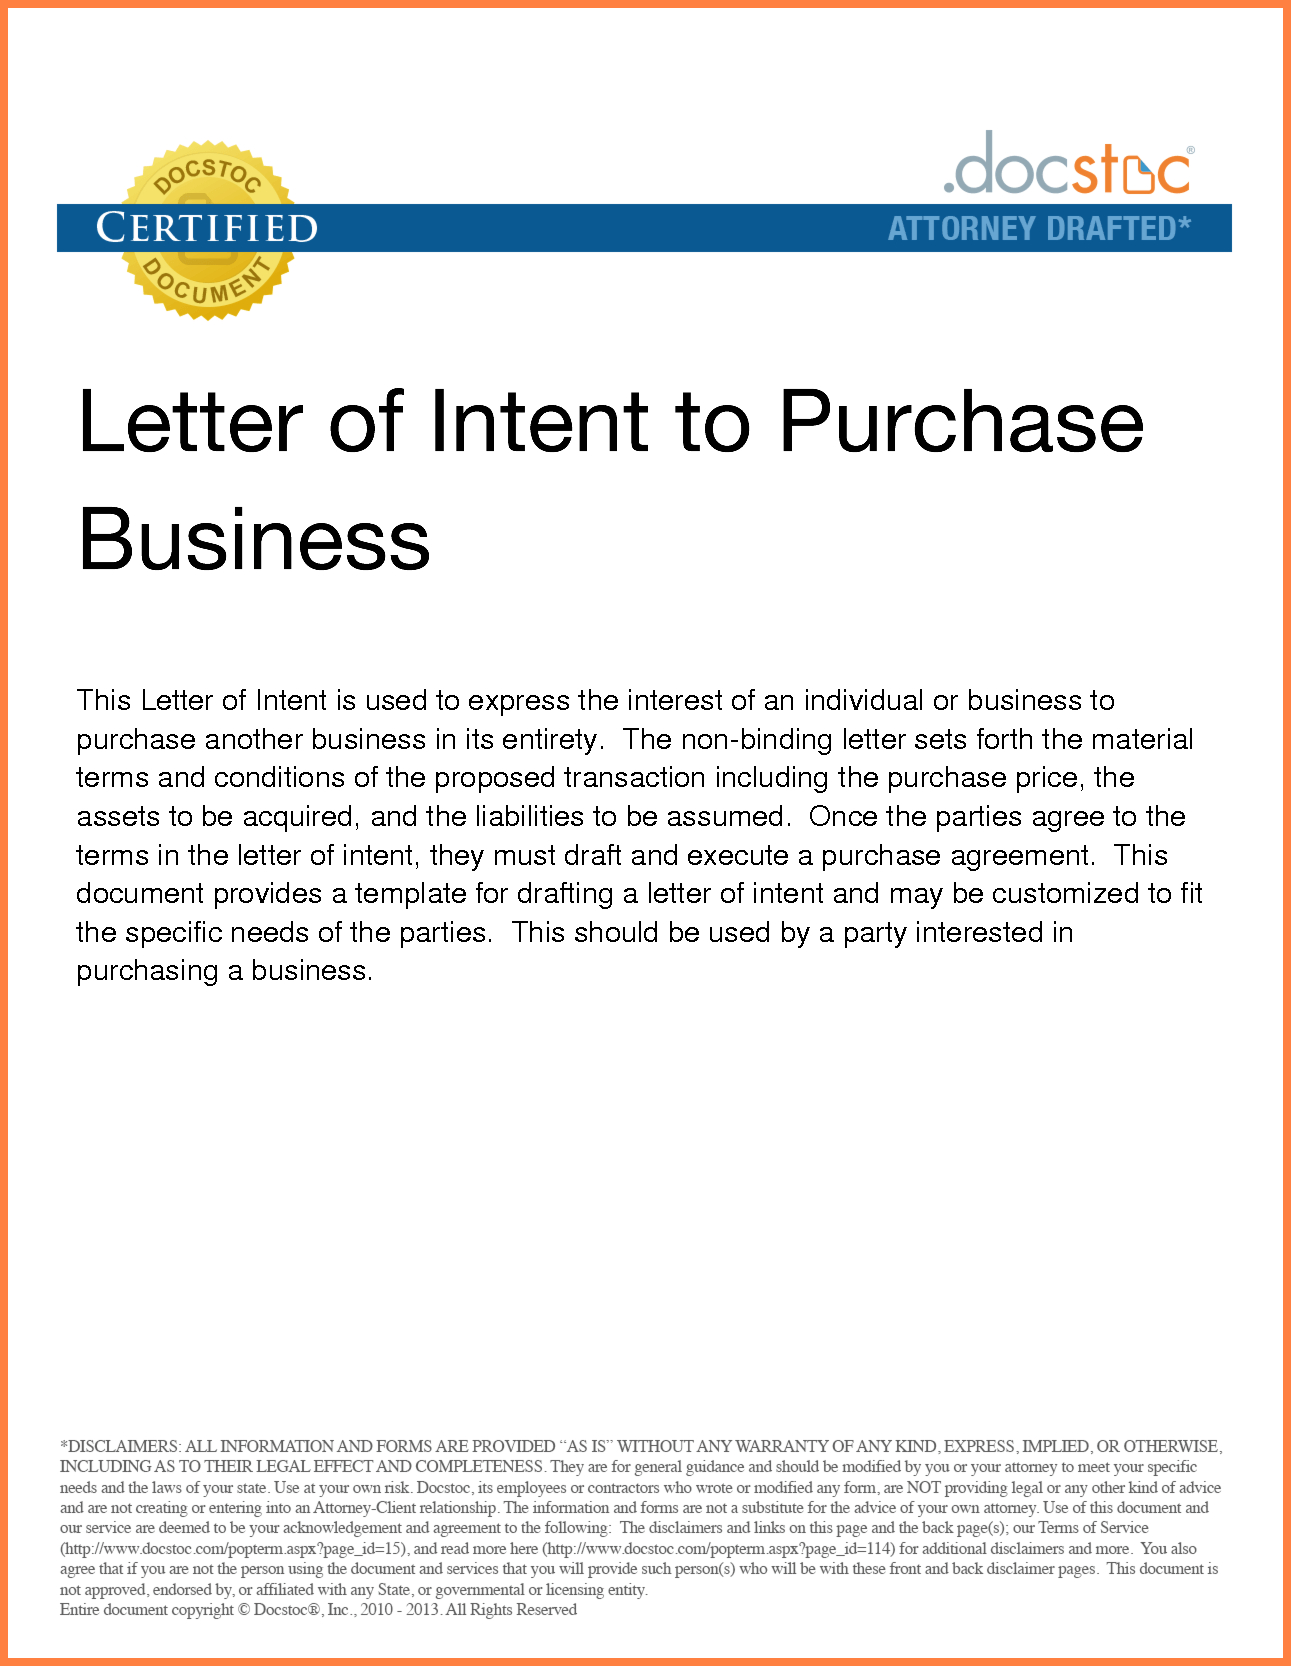 Letter Of Intent to Purchase Business Template - Letterf Intent to Purchase Property Malaysia Uk Business Template